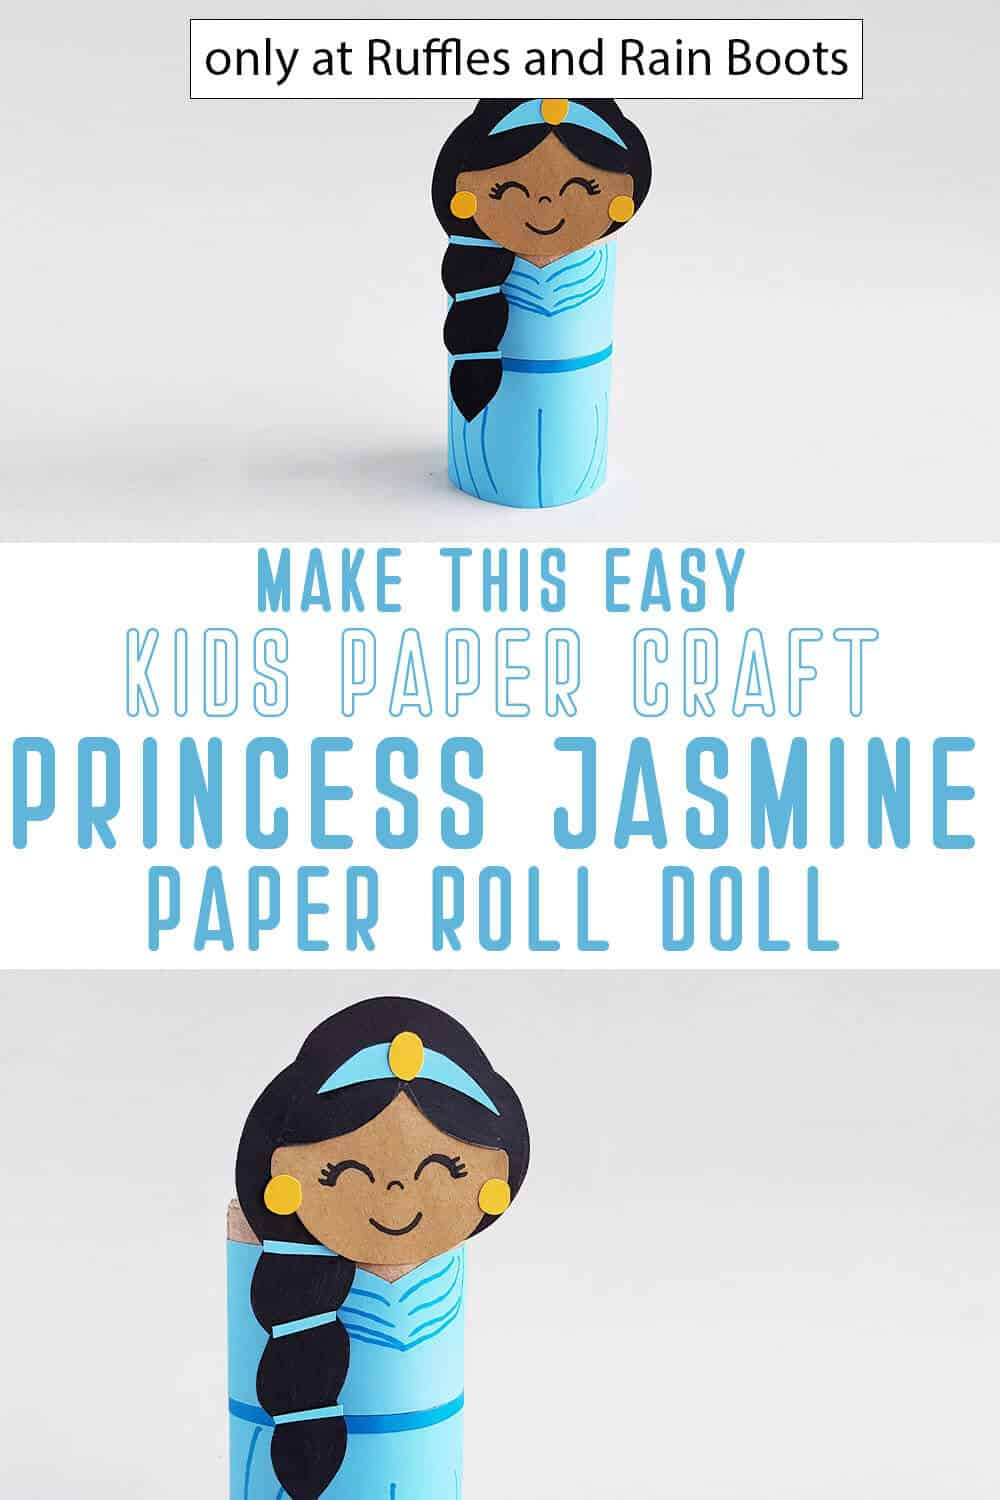 photo collage of princess jasmine paper craft for kids with text which reads make this easy kids paper craft princess jasmine paper roll doll